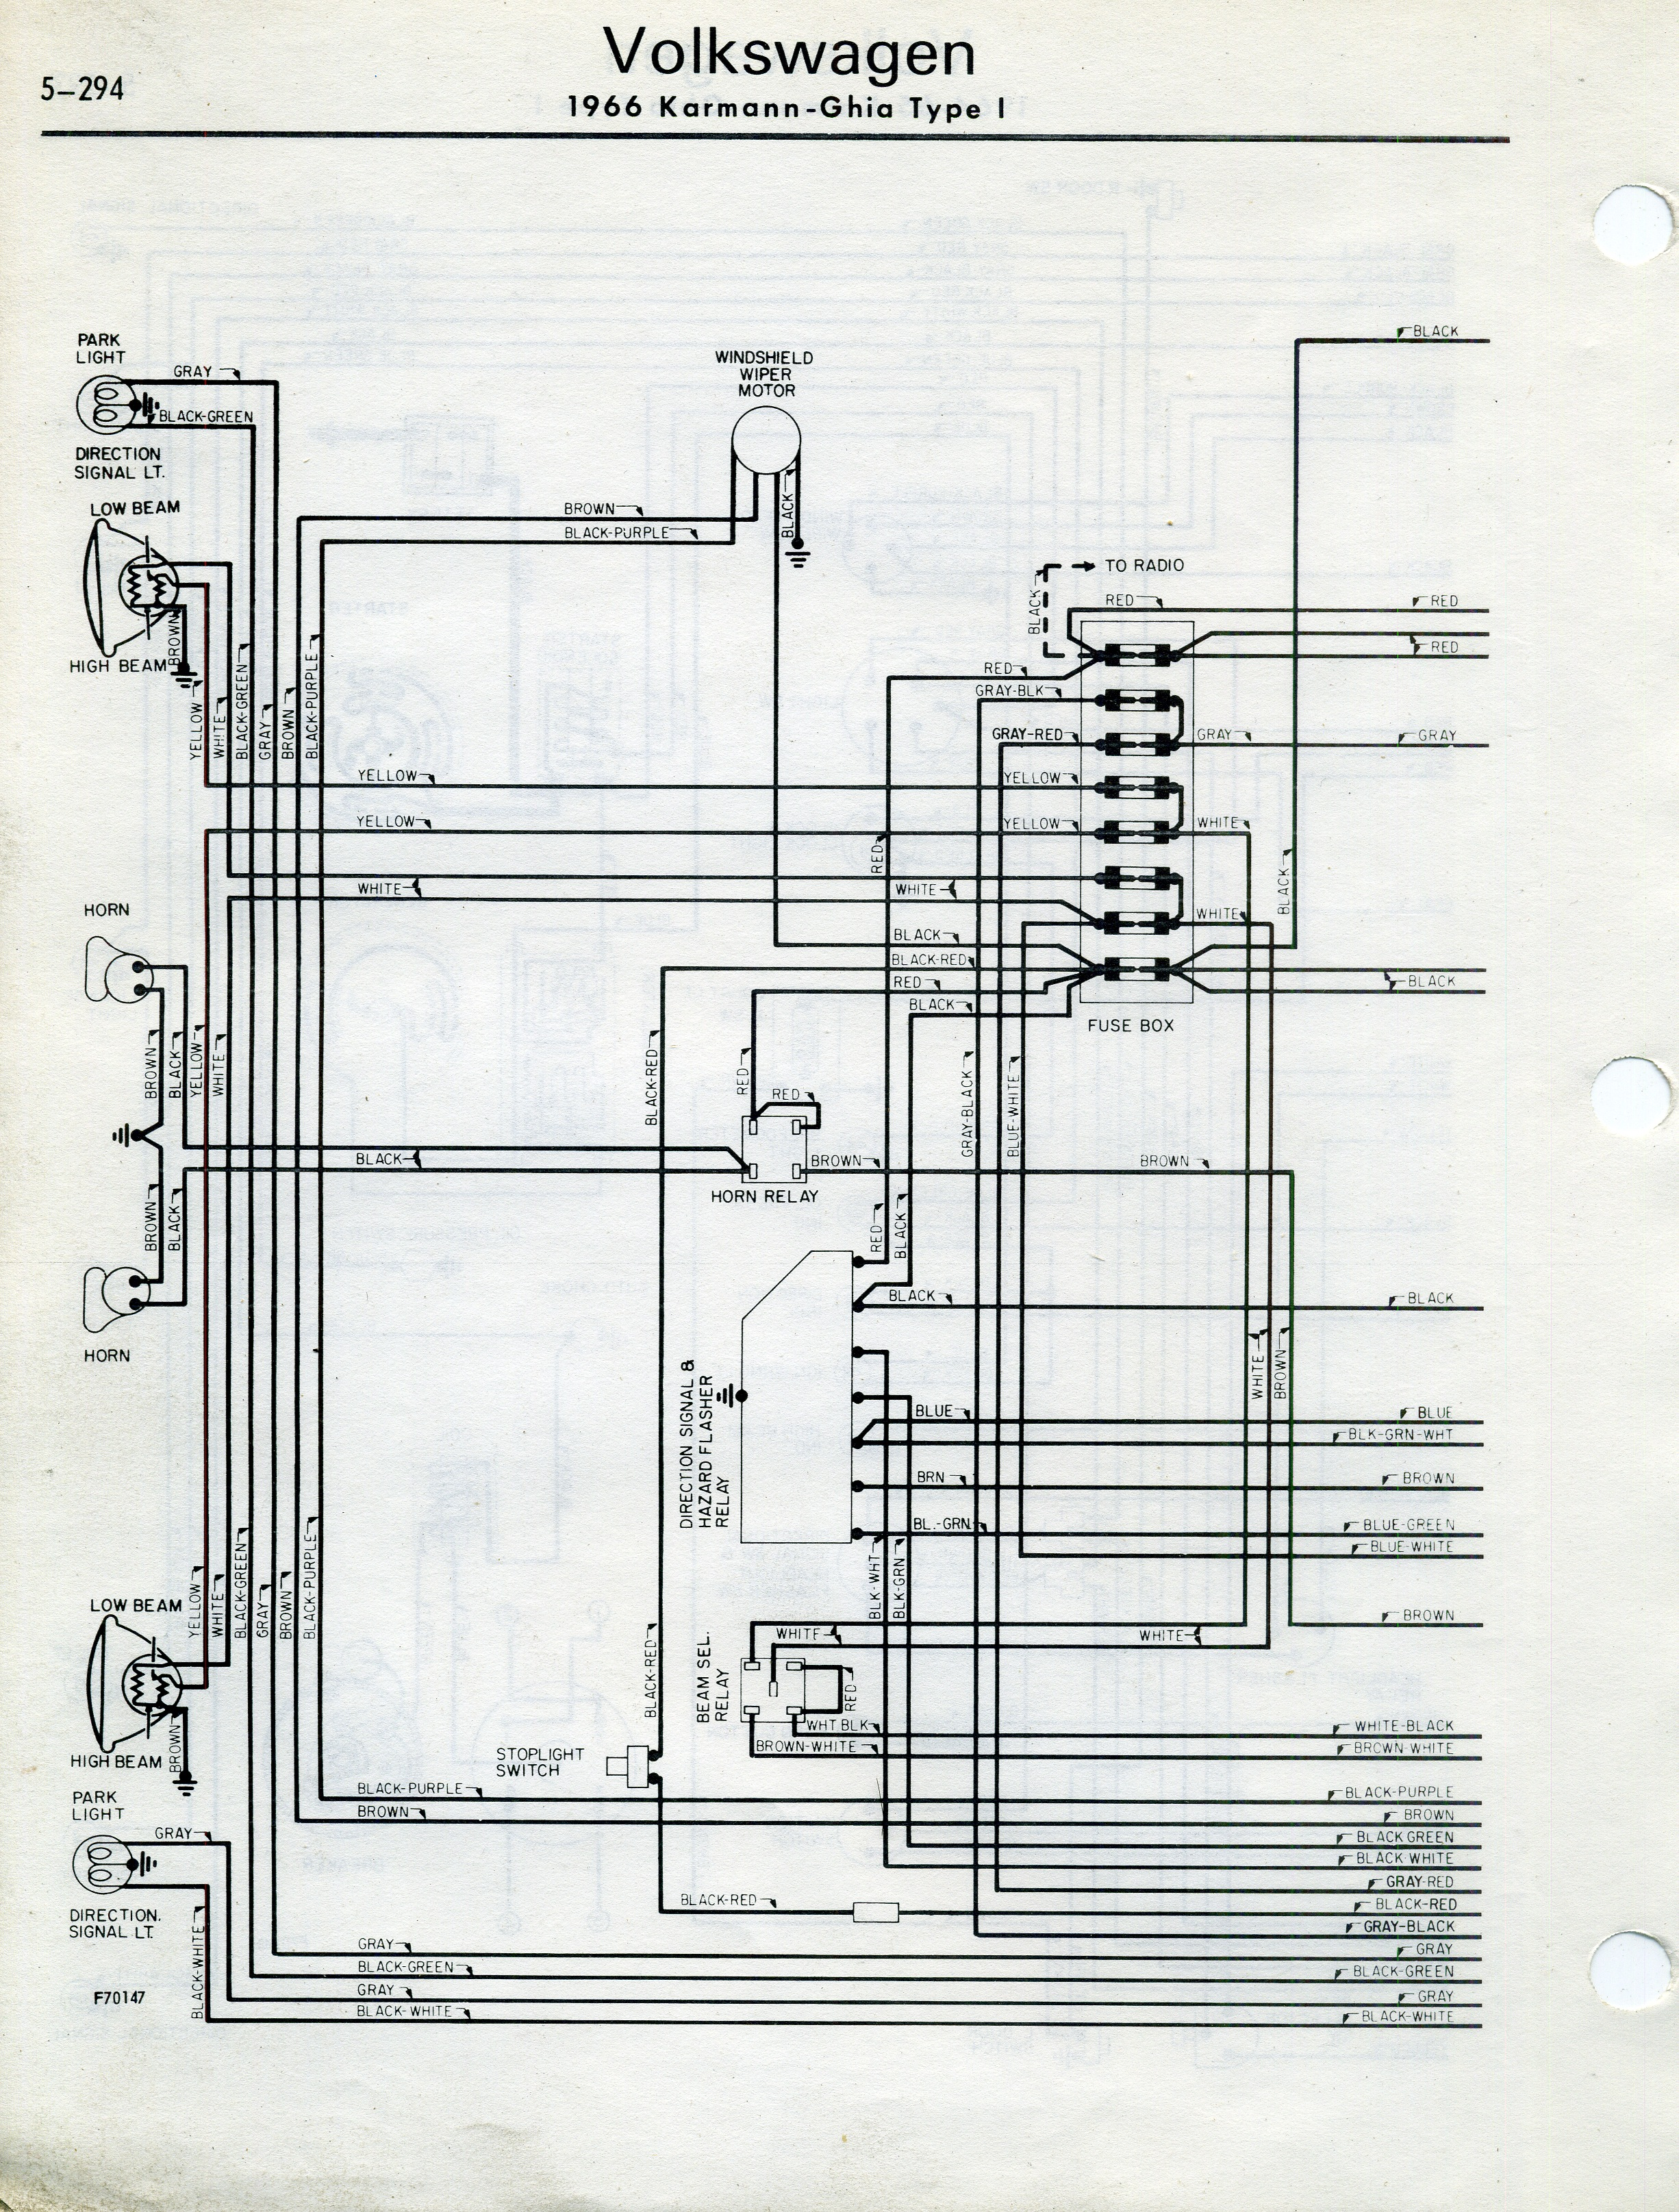 74 karmann ghia wiring diagram thesamba.com :: karmann ghia wiring diagrams 1974 karmann ghia wiring diagram #10